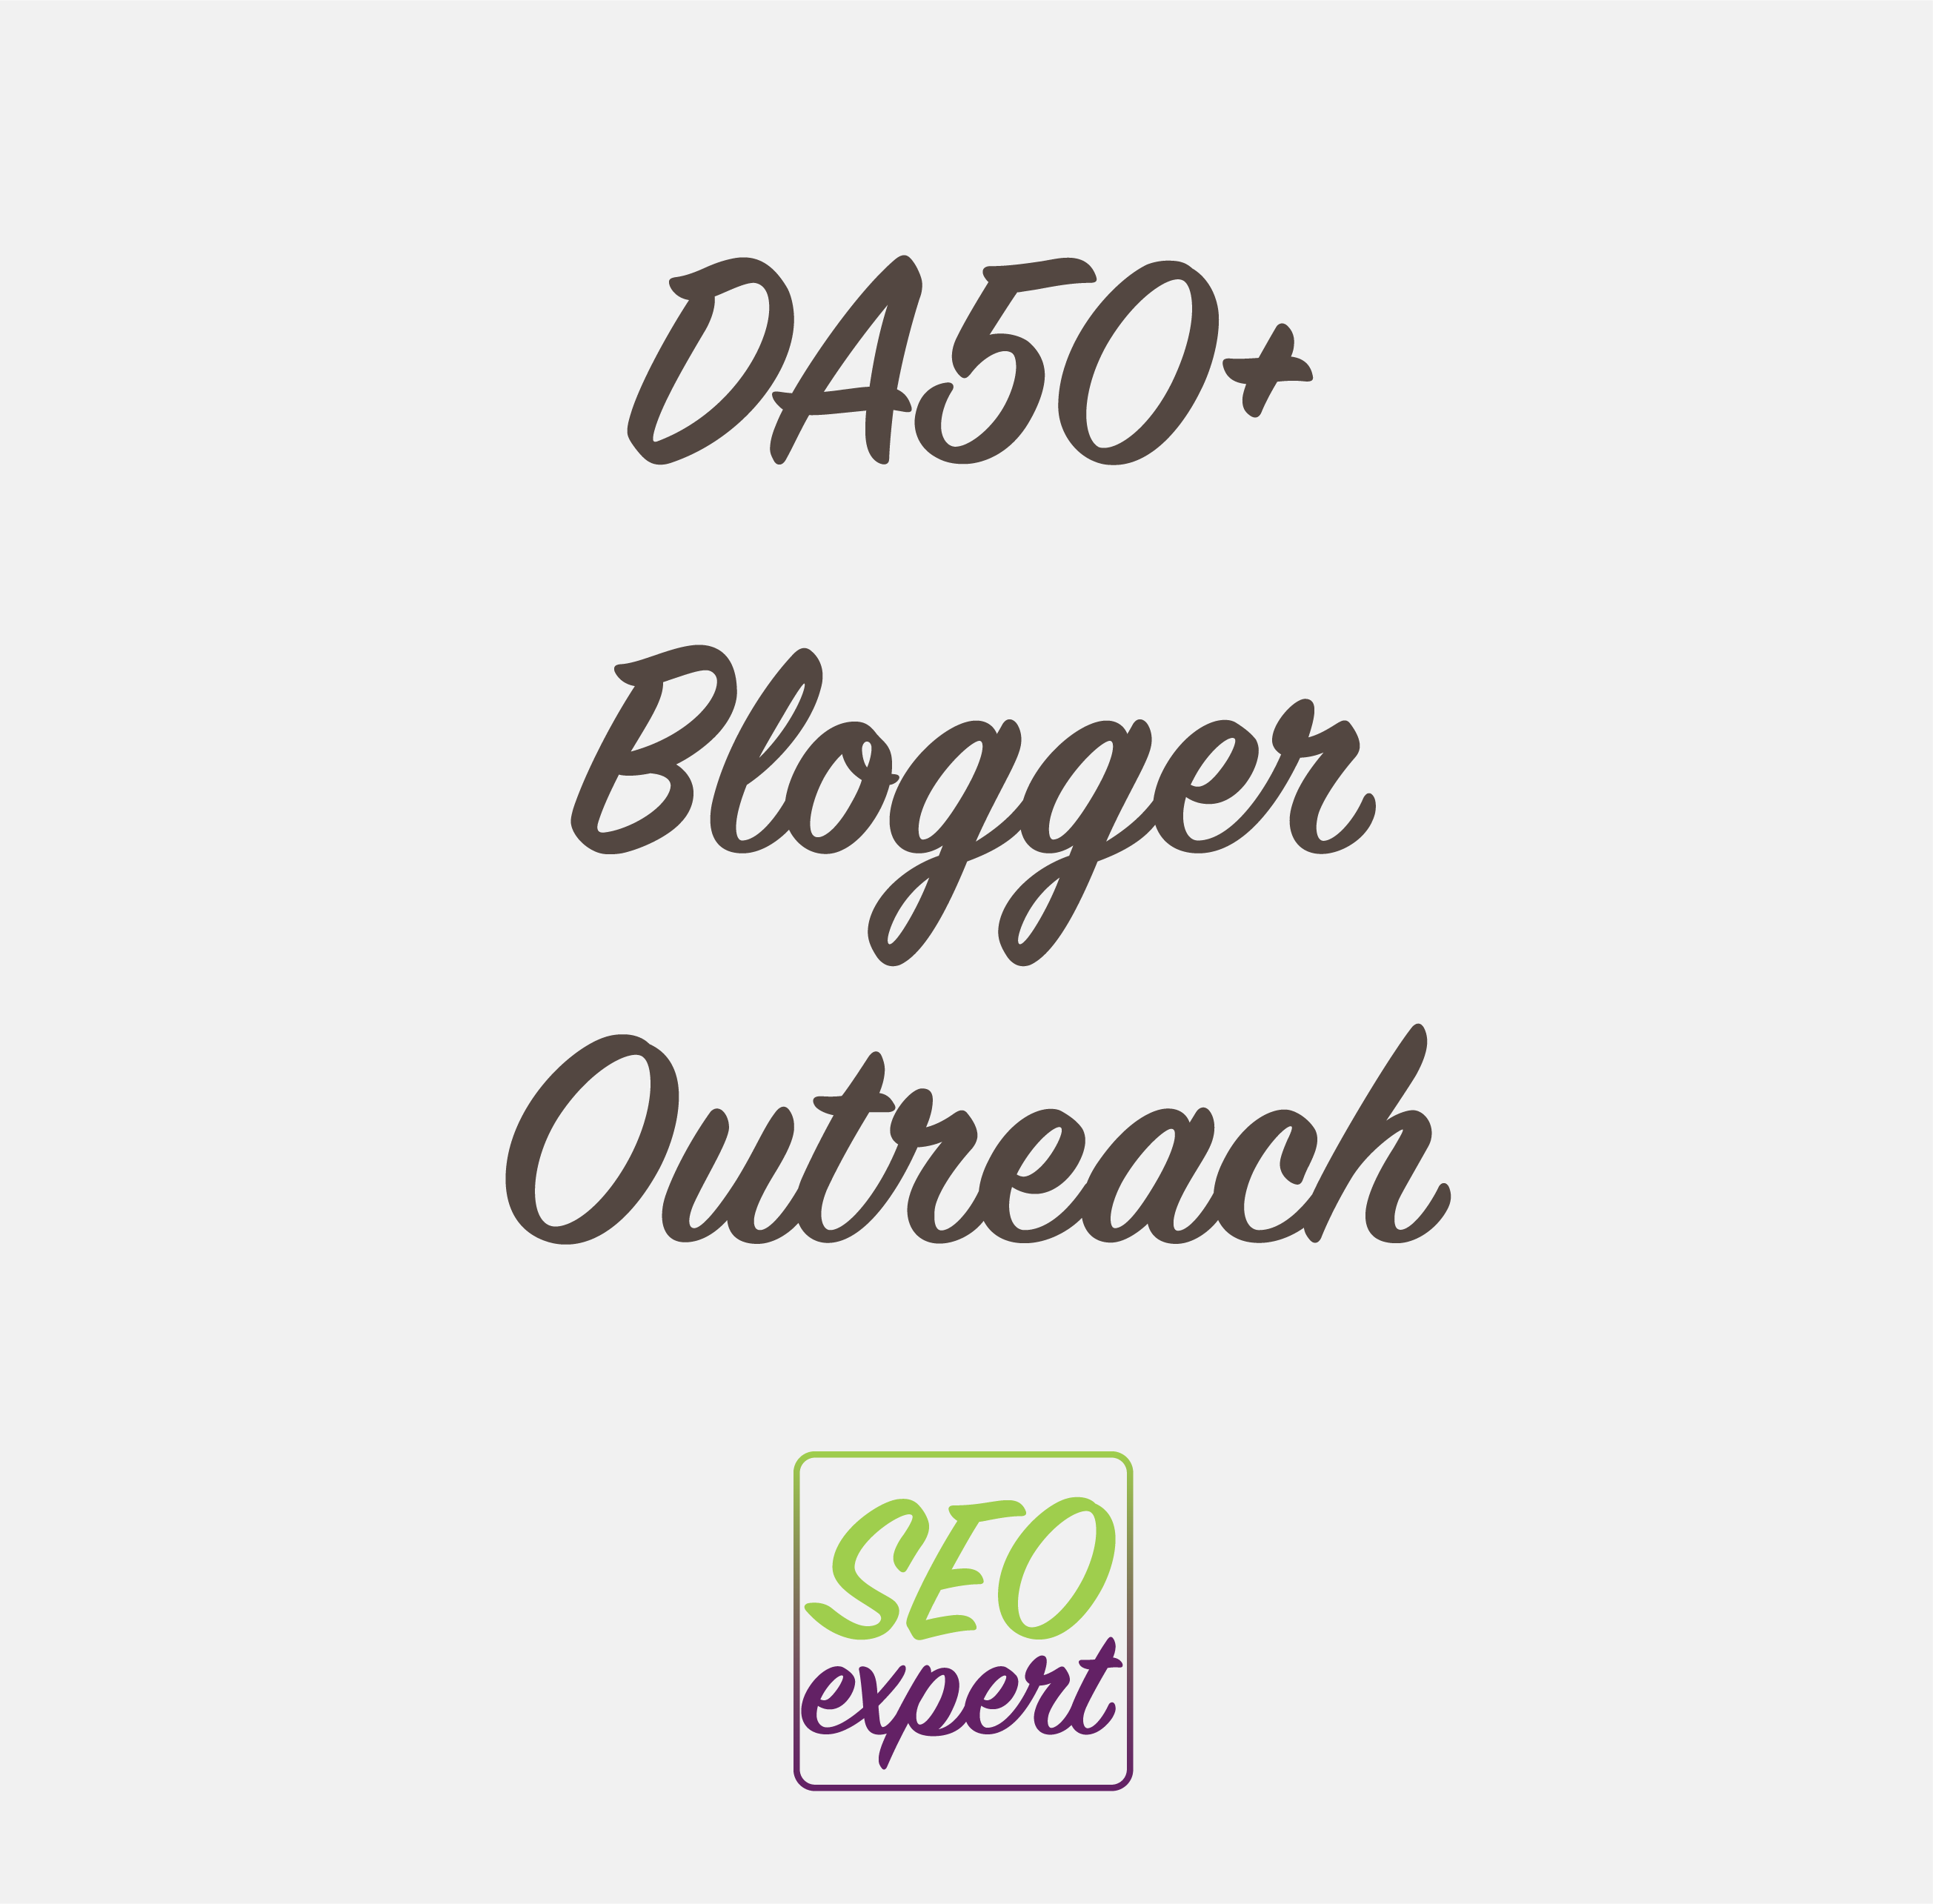 DA50 Blogger Outreach